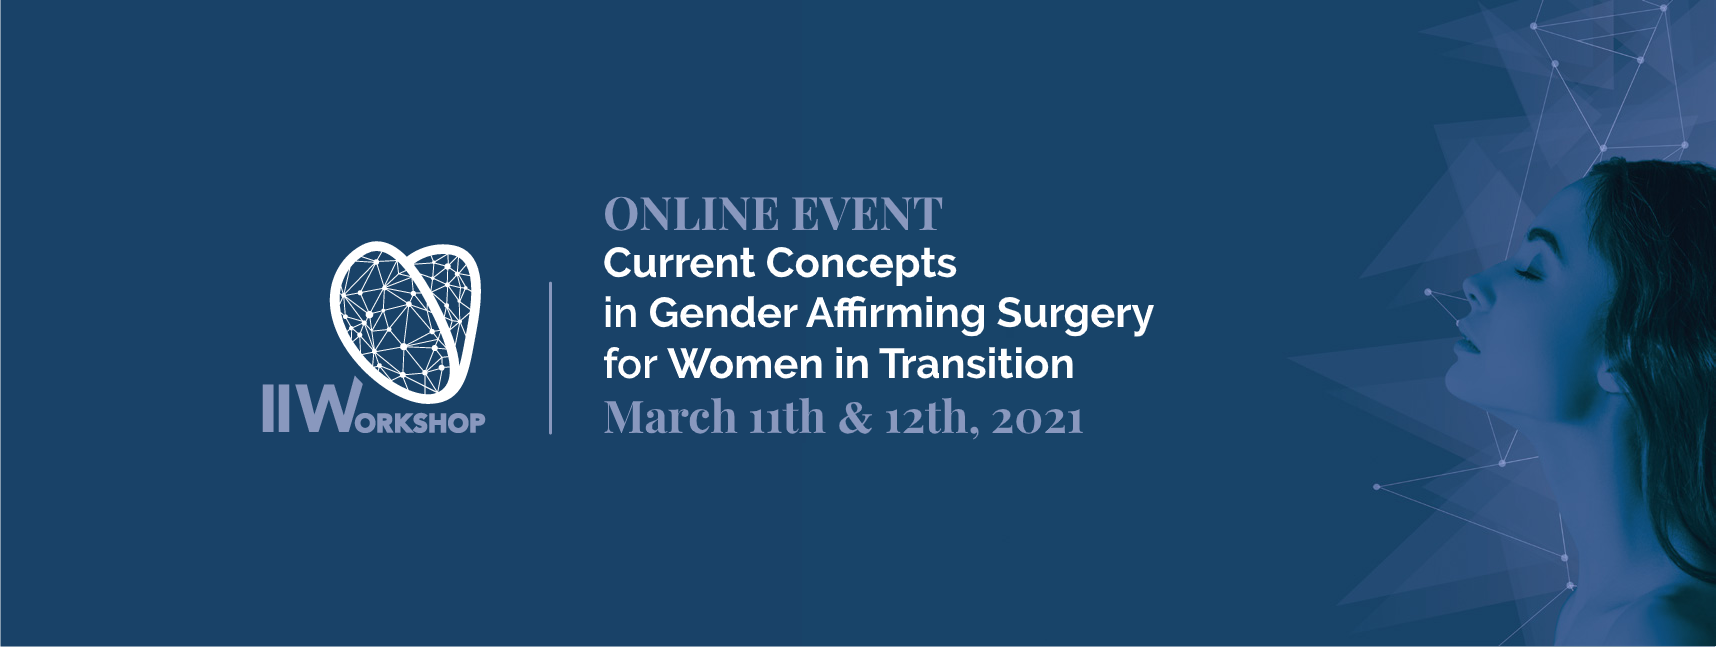 Online event, current concepts in Gender Affirming Surgery for Women in Transition